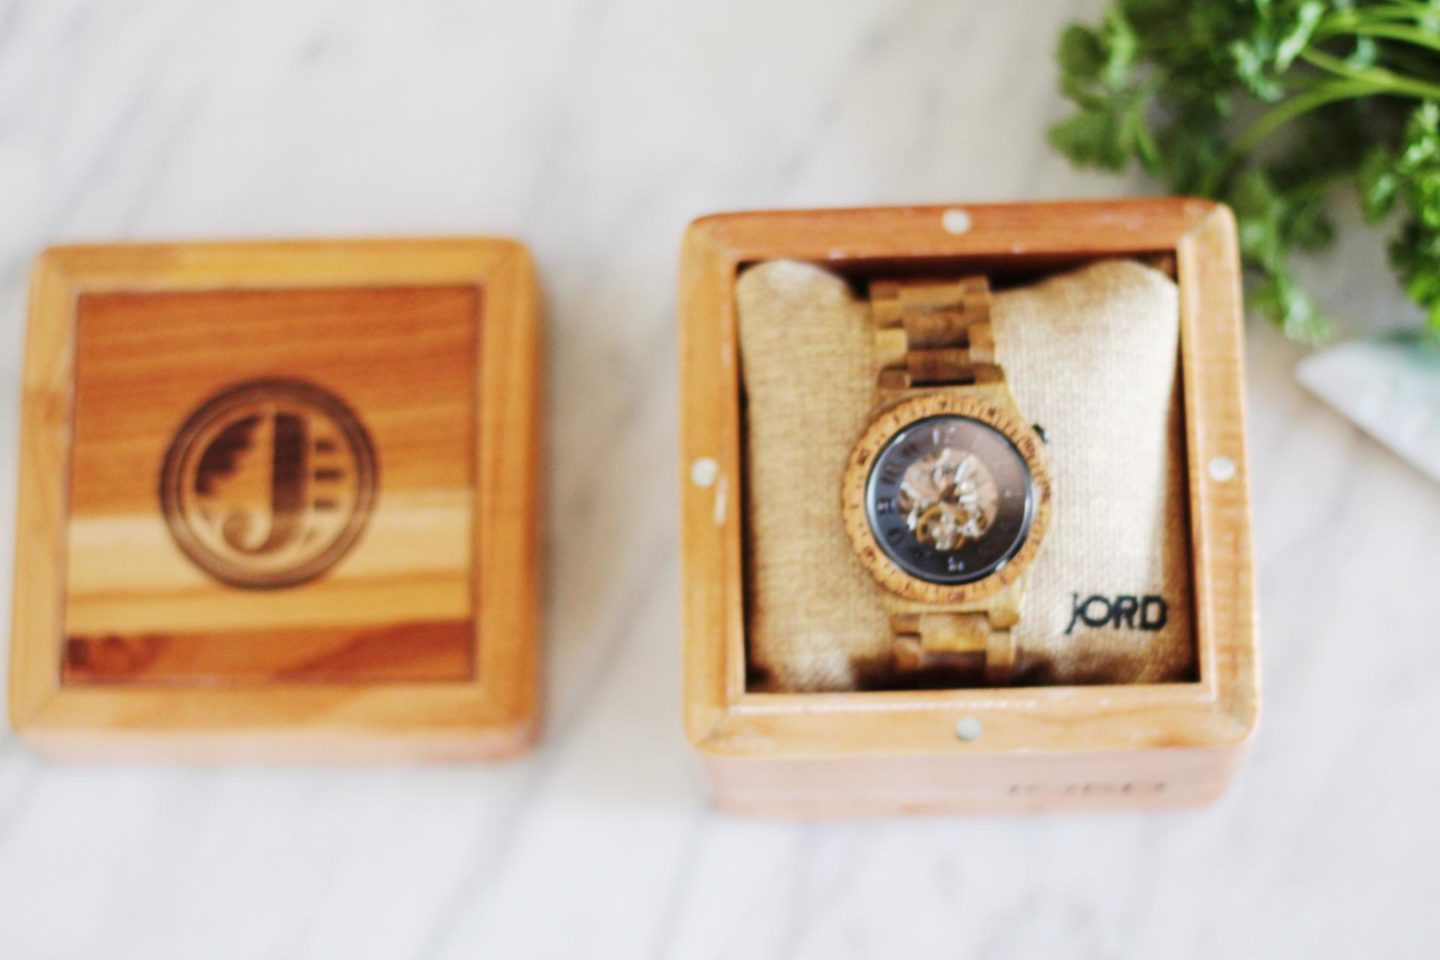 http://www.woodwatches.com/#merrygolden